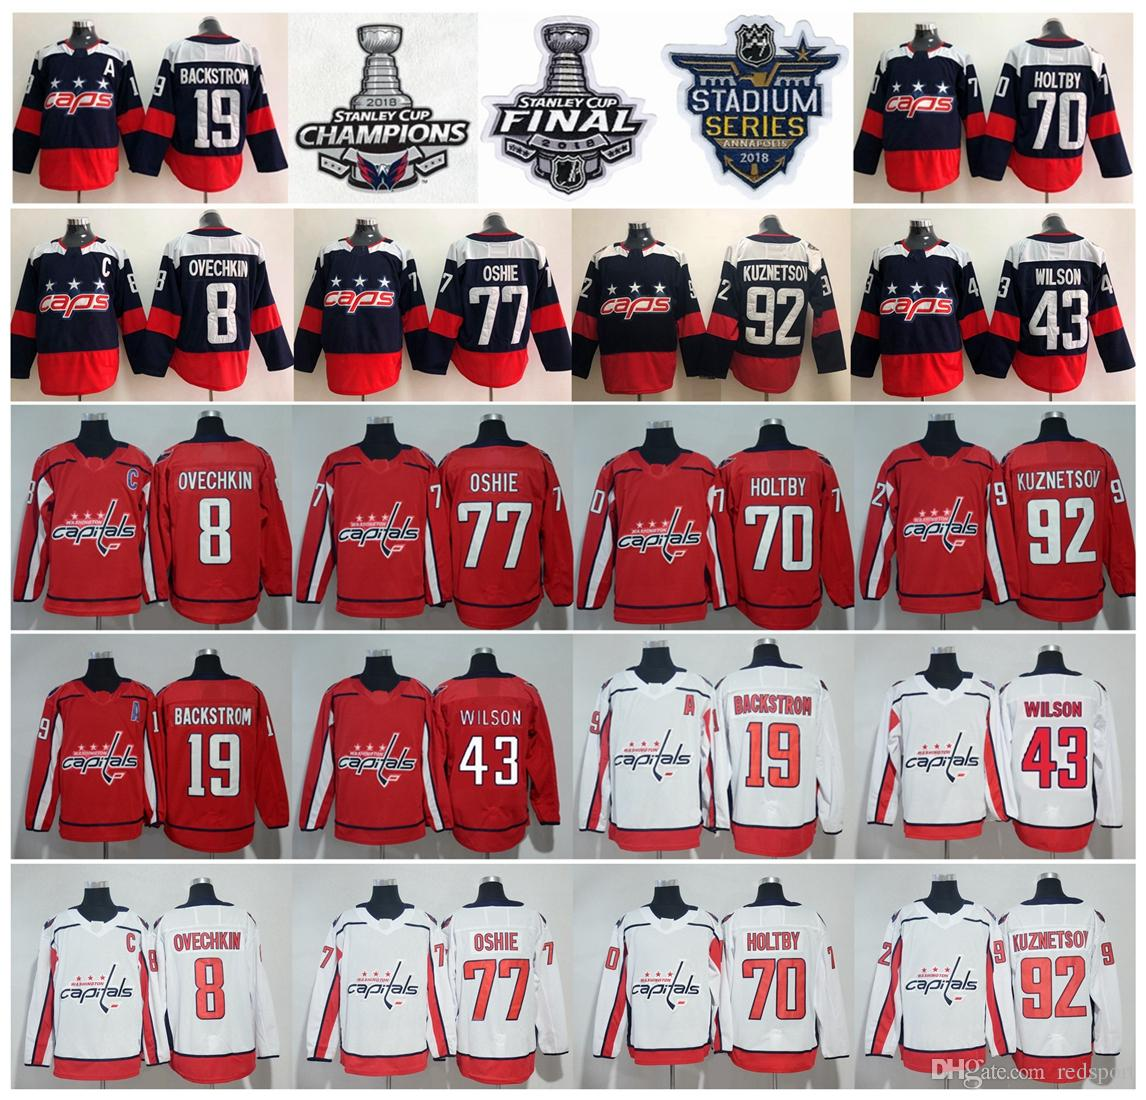 583e047b233 2018 Stanley Cup Champions Washington Capitals Alex Ovechkin TJ Oshie  Braden Holtby Nicklas Backstrom Wilson Evgeny Kuznetsov Hockey Jerseys UK  2019 From ...